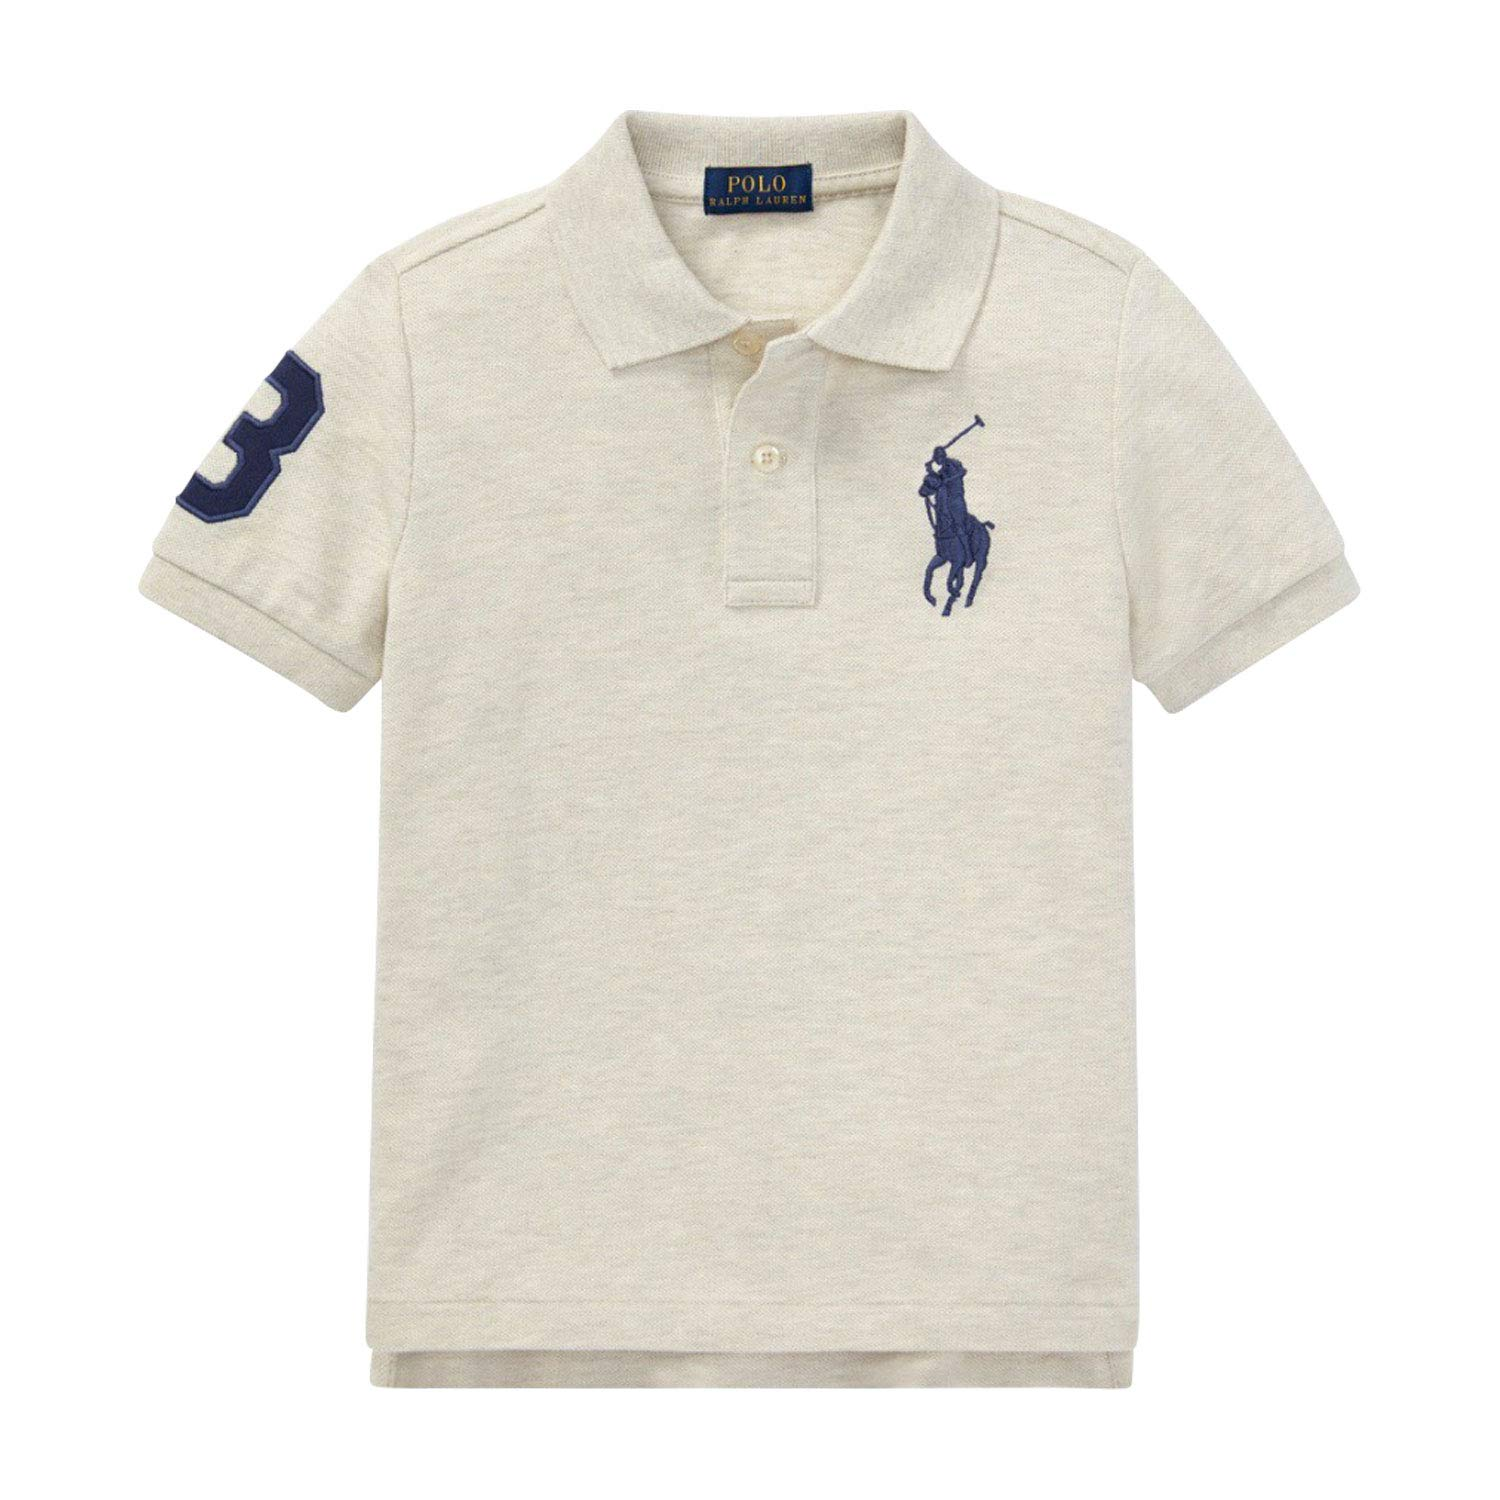 2bb38ed0 Amazon.com: Polo Ralph Lauren Toddler/Boys Shirts Big Pony & Number on  Sleeves 100% Cotton (2-20 Years): Clothing